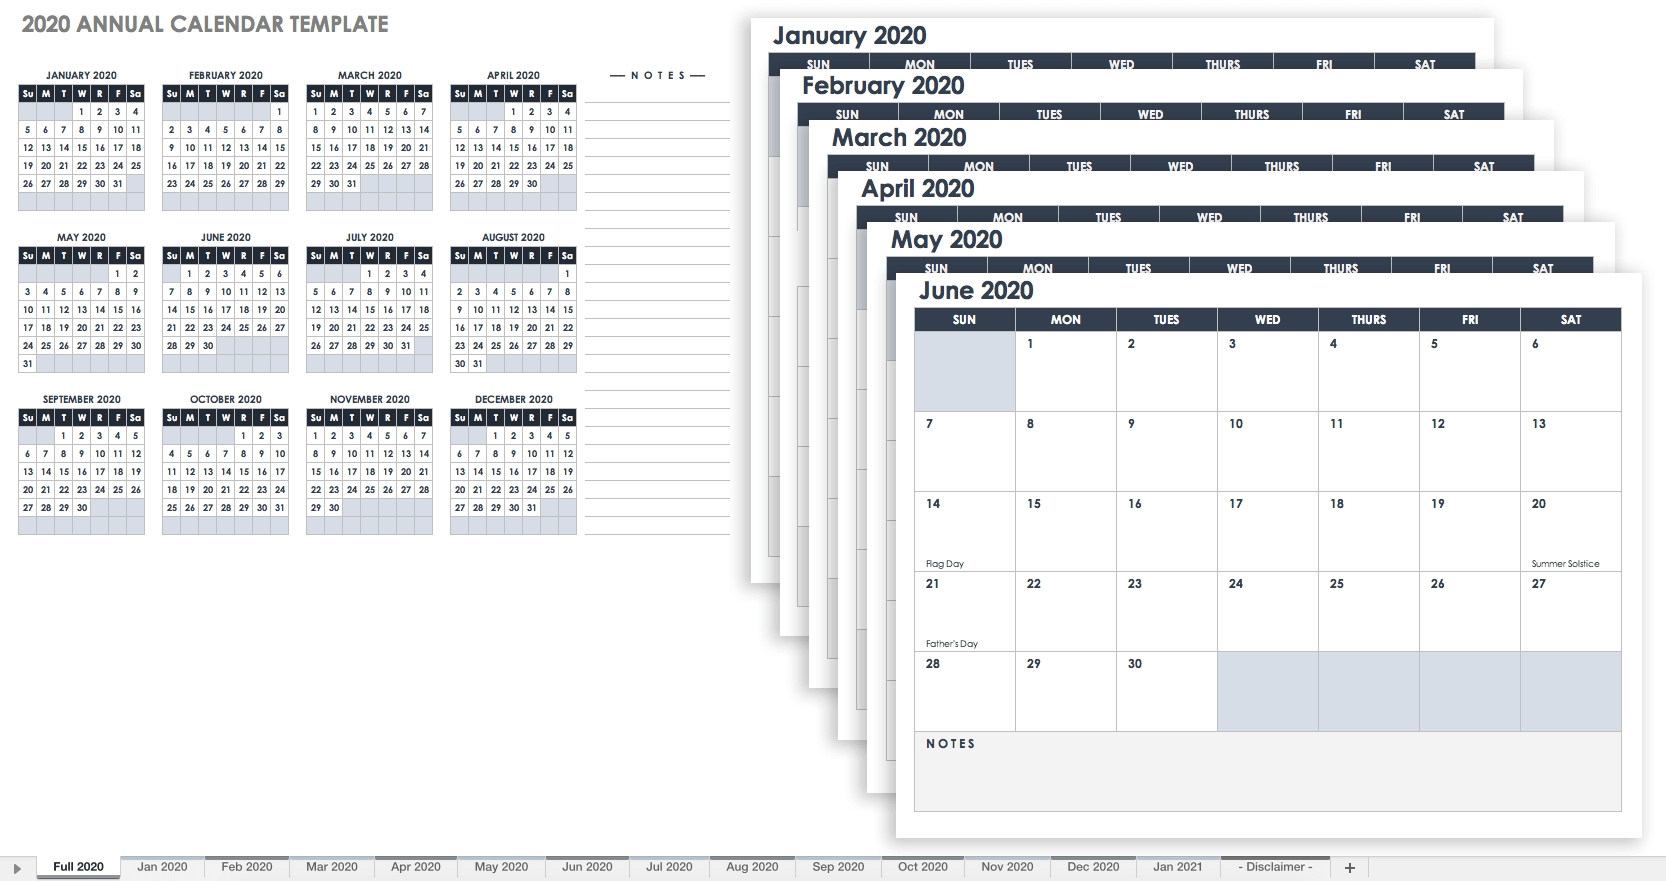 Print Monthly Calendar With Lines | Example Calendar Printable intended for Printable Calendar With Lines